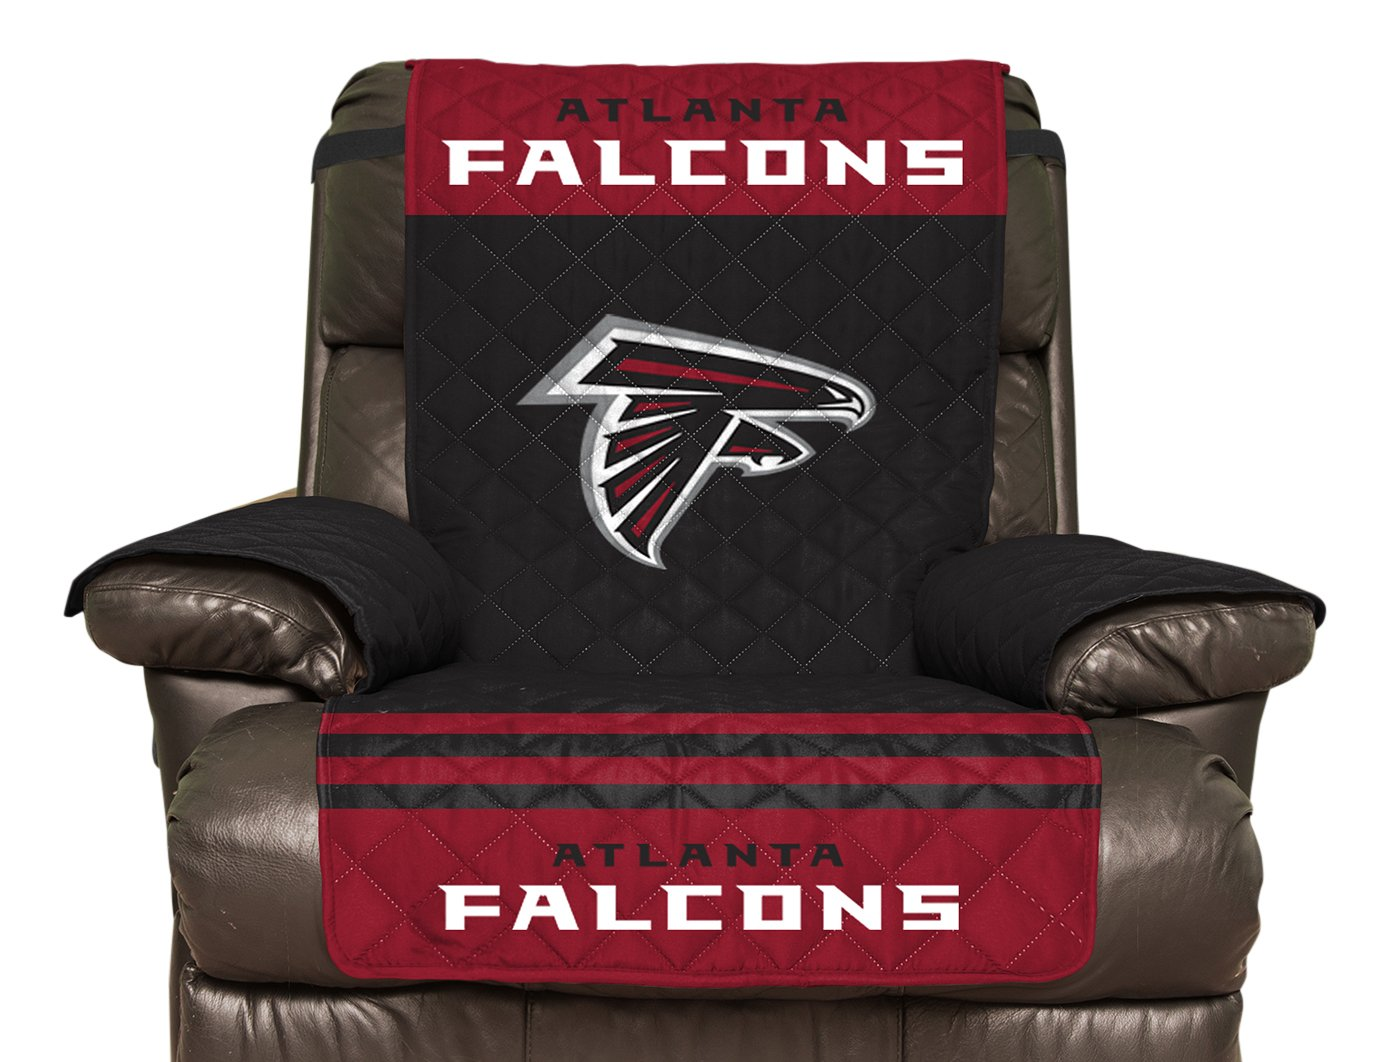 Amazon.com  NFL Arizona Cardinals Recliner Reversible Furniture Protector with Elastic Straps 80-inches by 65-inches  Sports u0026 Outdoors  sc 1 st  Amazon.com & Amazon.com : NFL Arizona Cardinals Recliner Reversible Furniture ... islam-shia.org